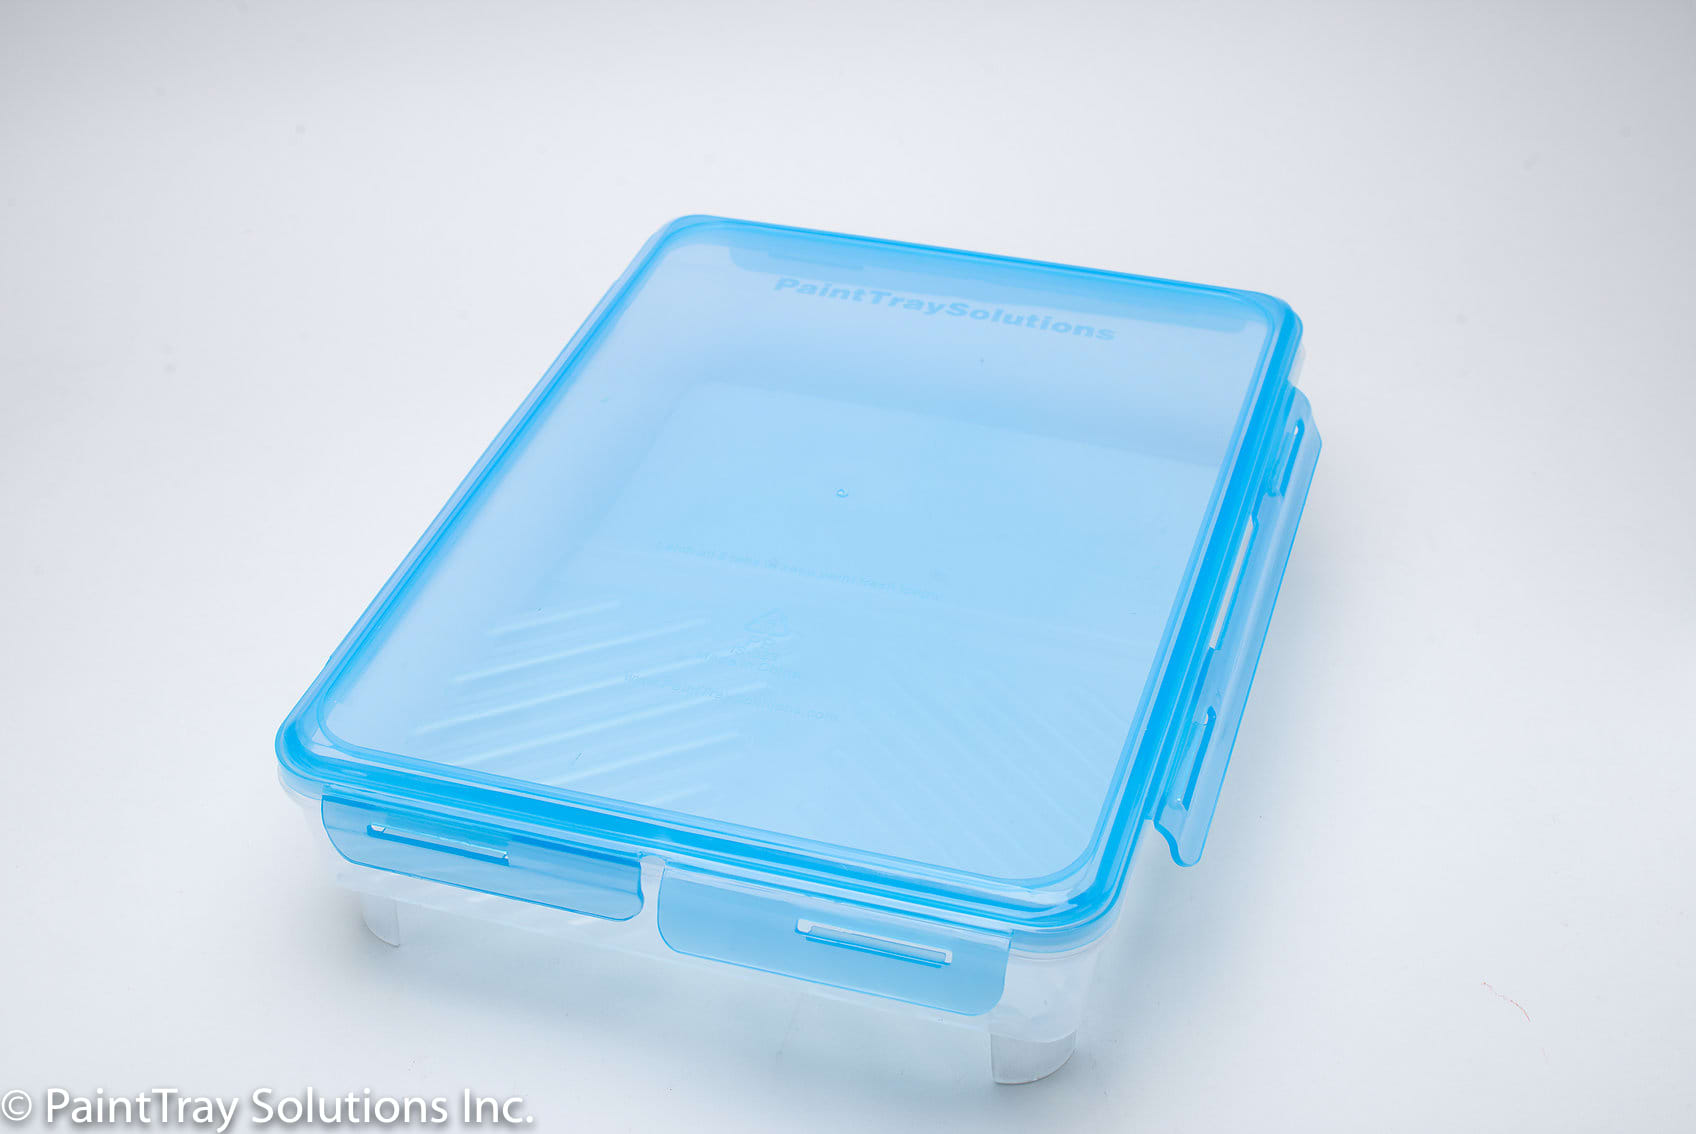 Painttray manufactured